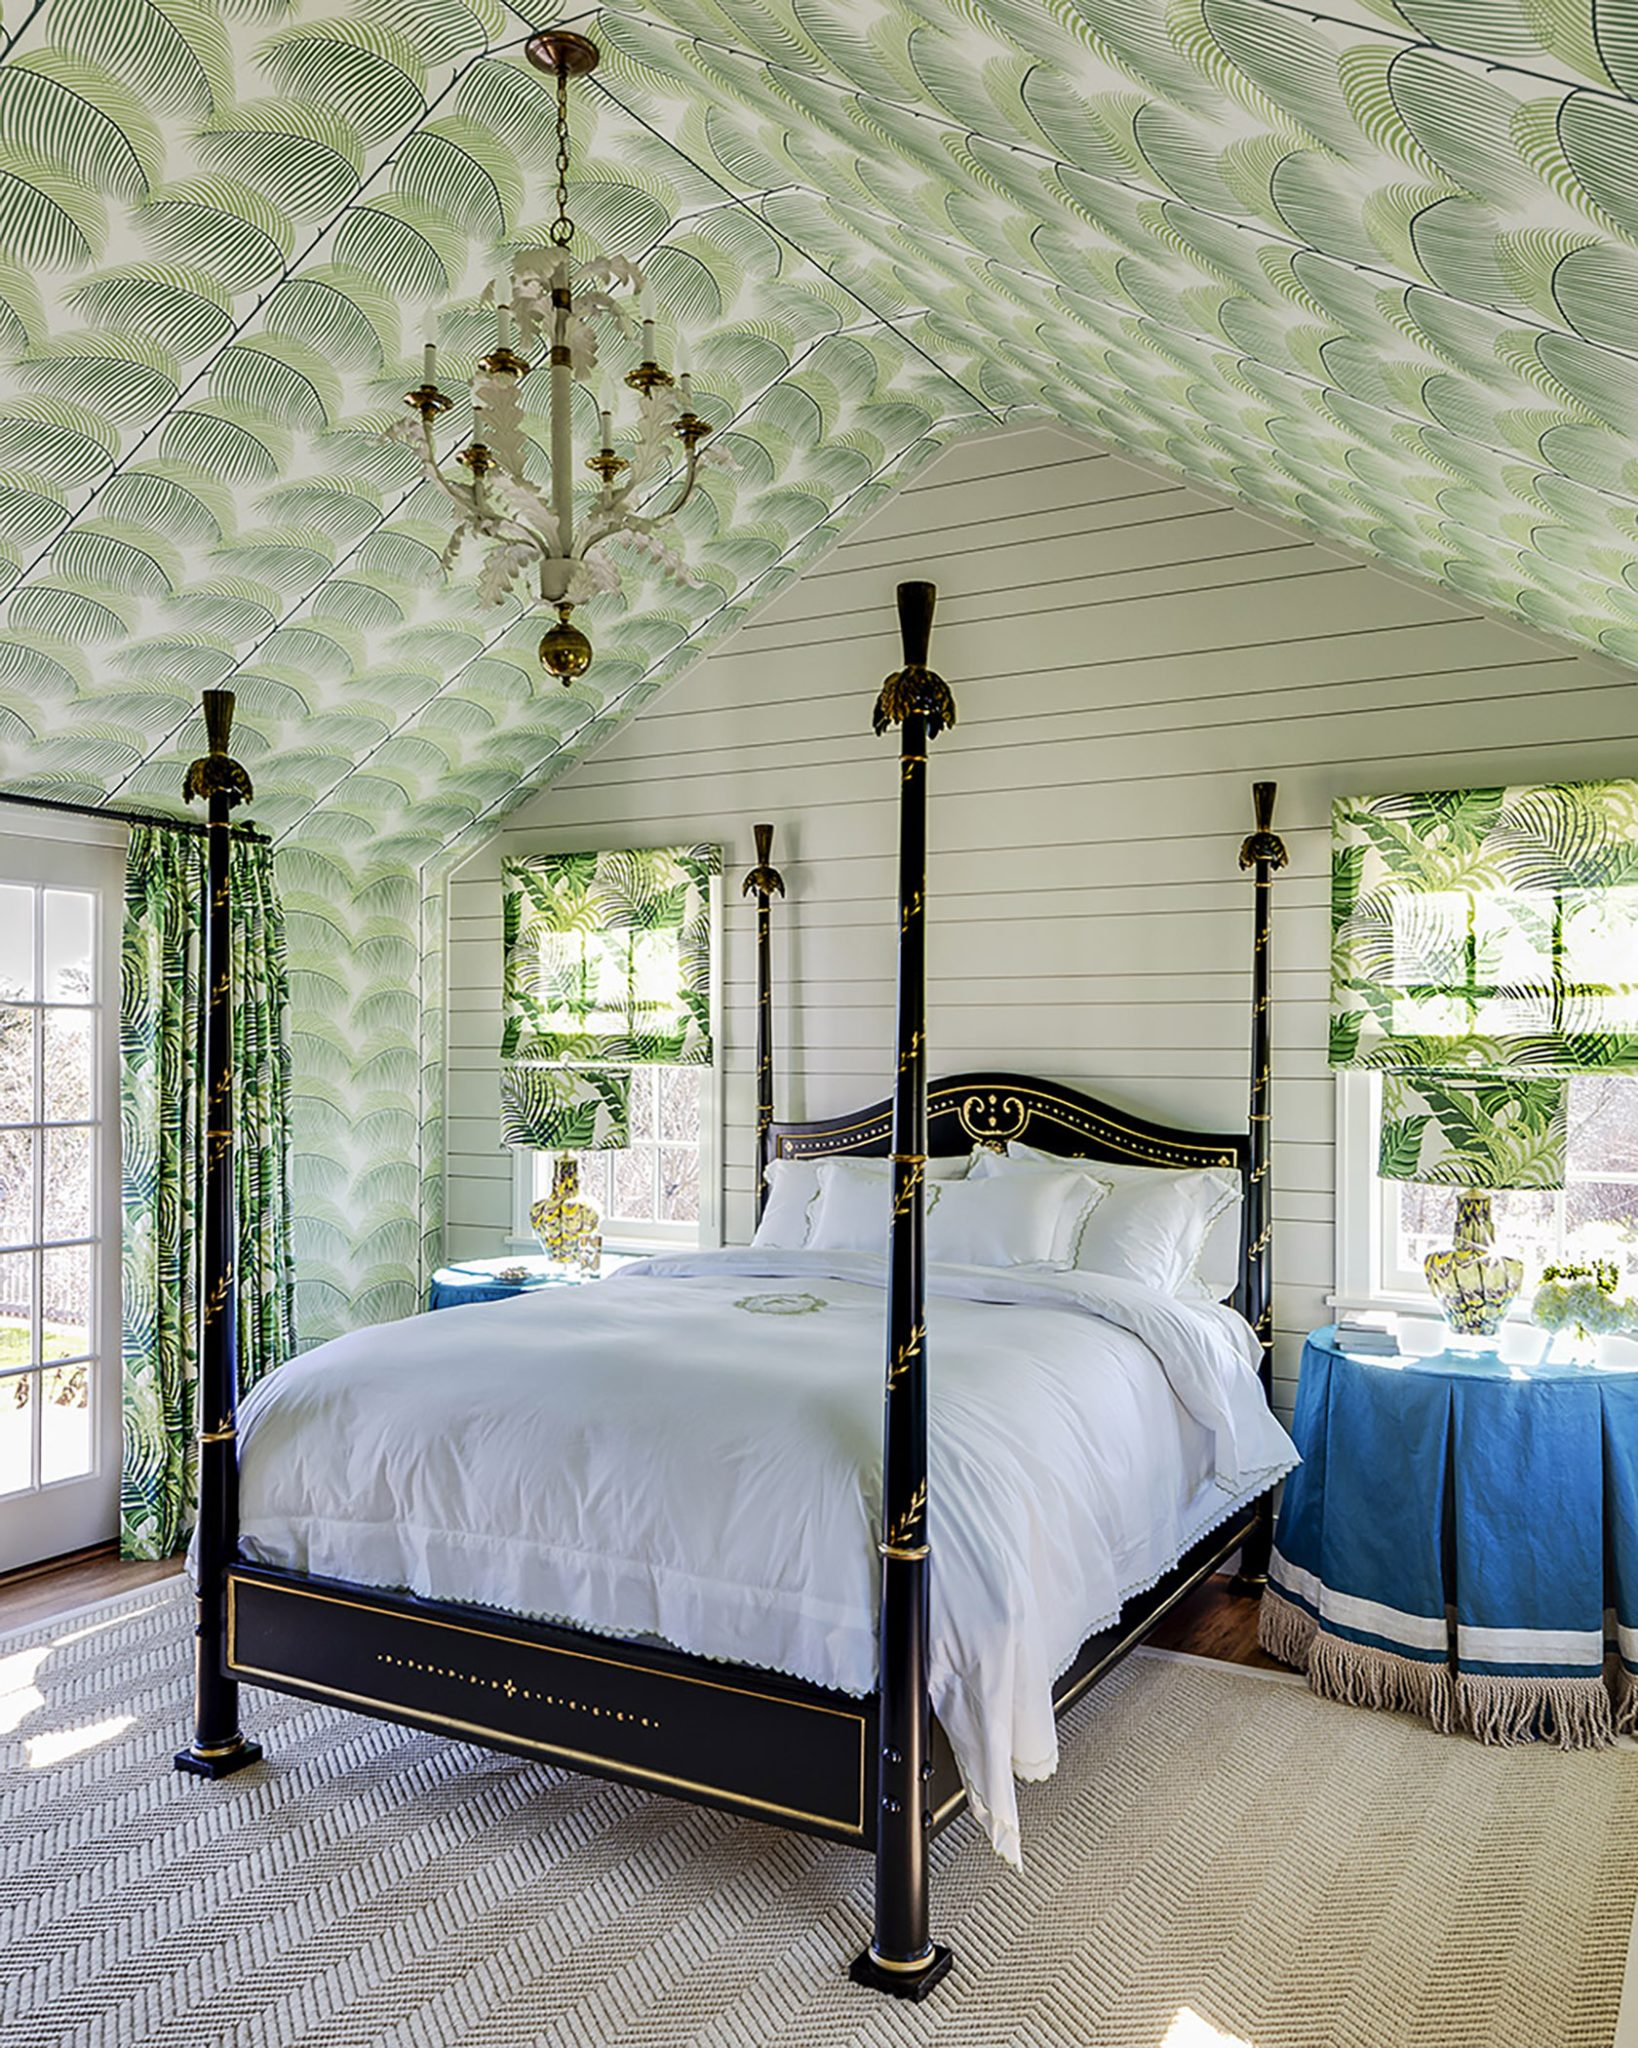 Nantucket Beach House Guest Bedroom by Marks & Frantz / Sanderson for Zoffany Manila Palm Wallpaper by Marks & Frantz